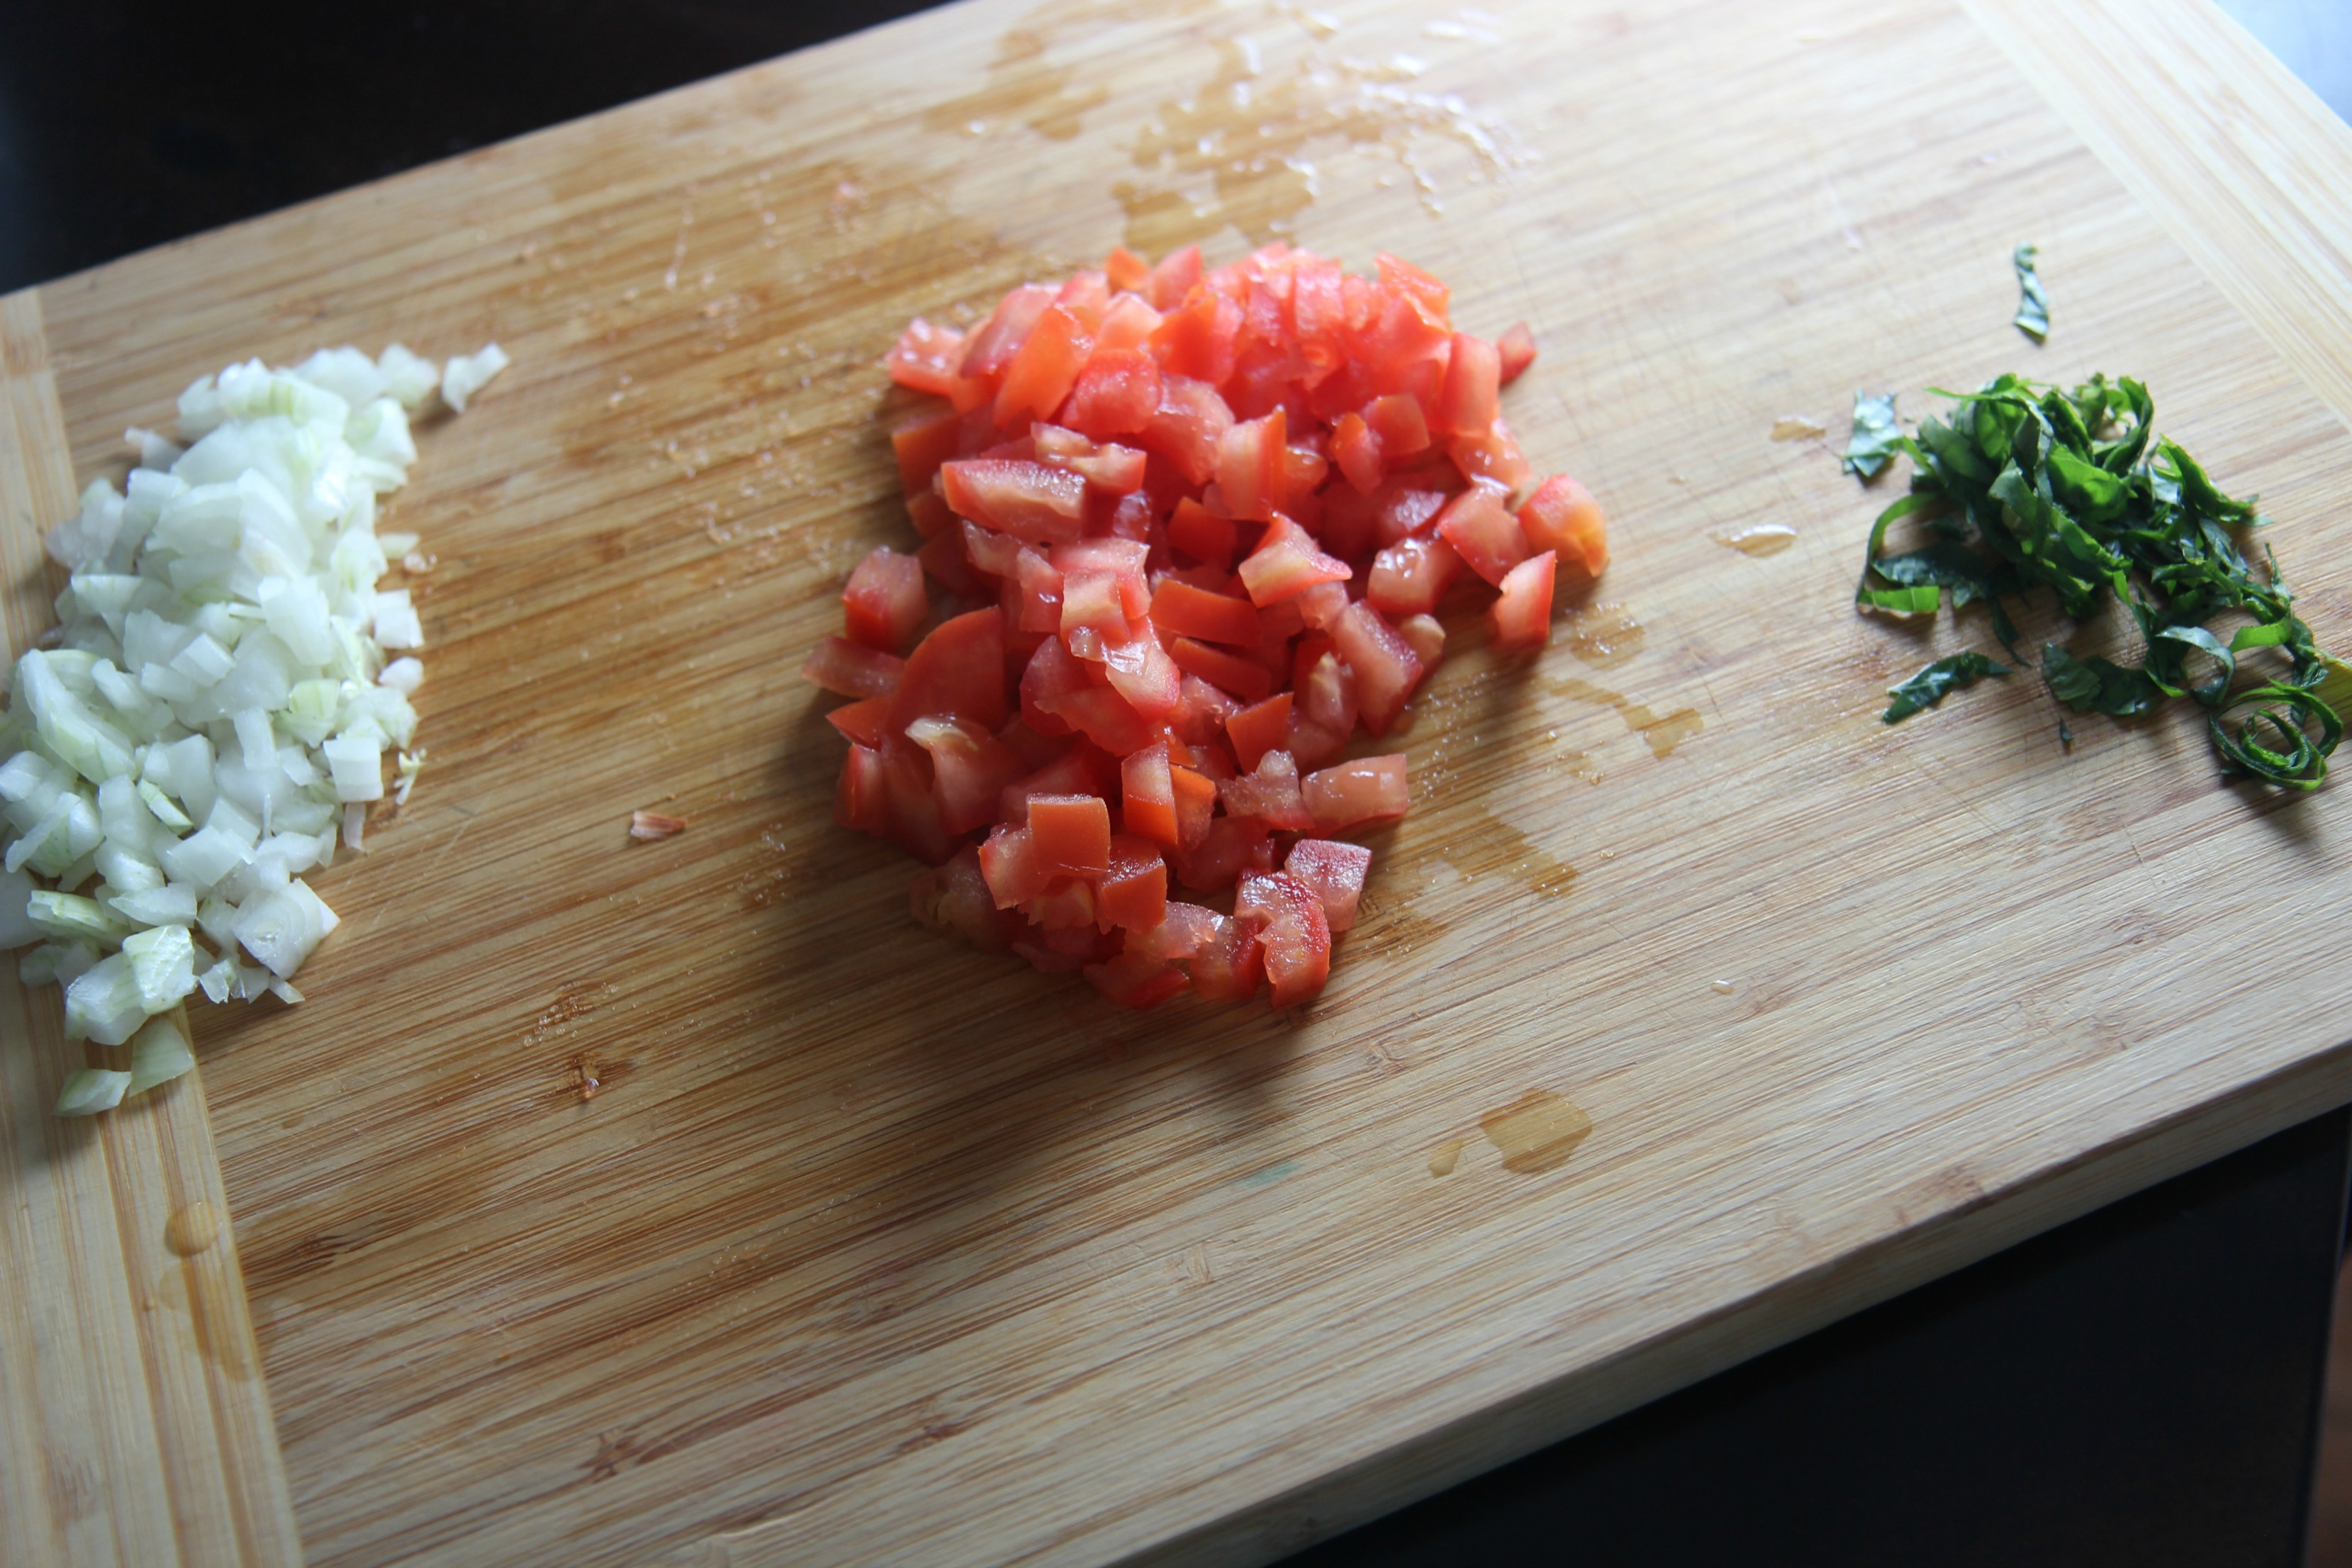 Chopped onions, tomatoes, and basil.